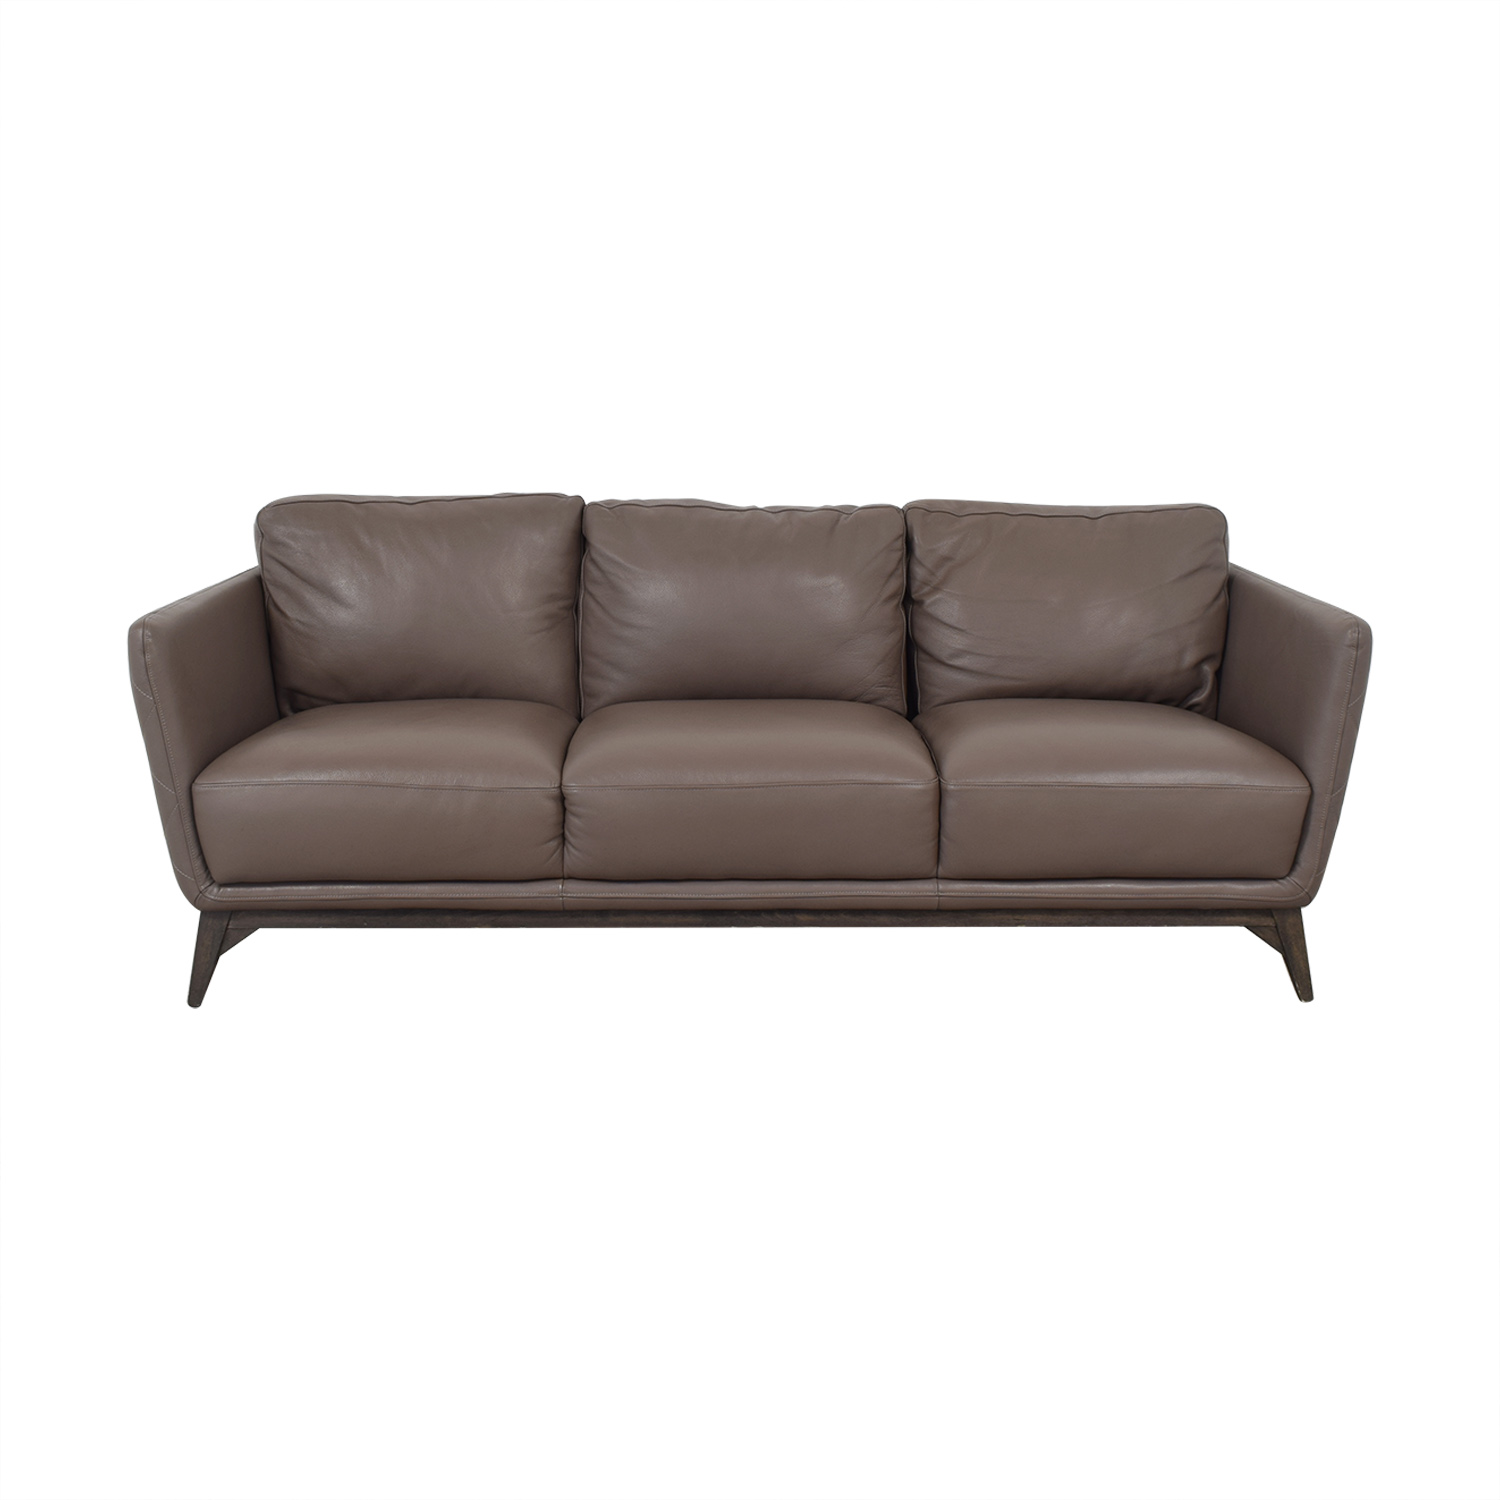 buy Macy's Modern Three Cushion Sofa Macy's Classic Sofas